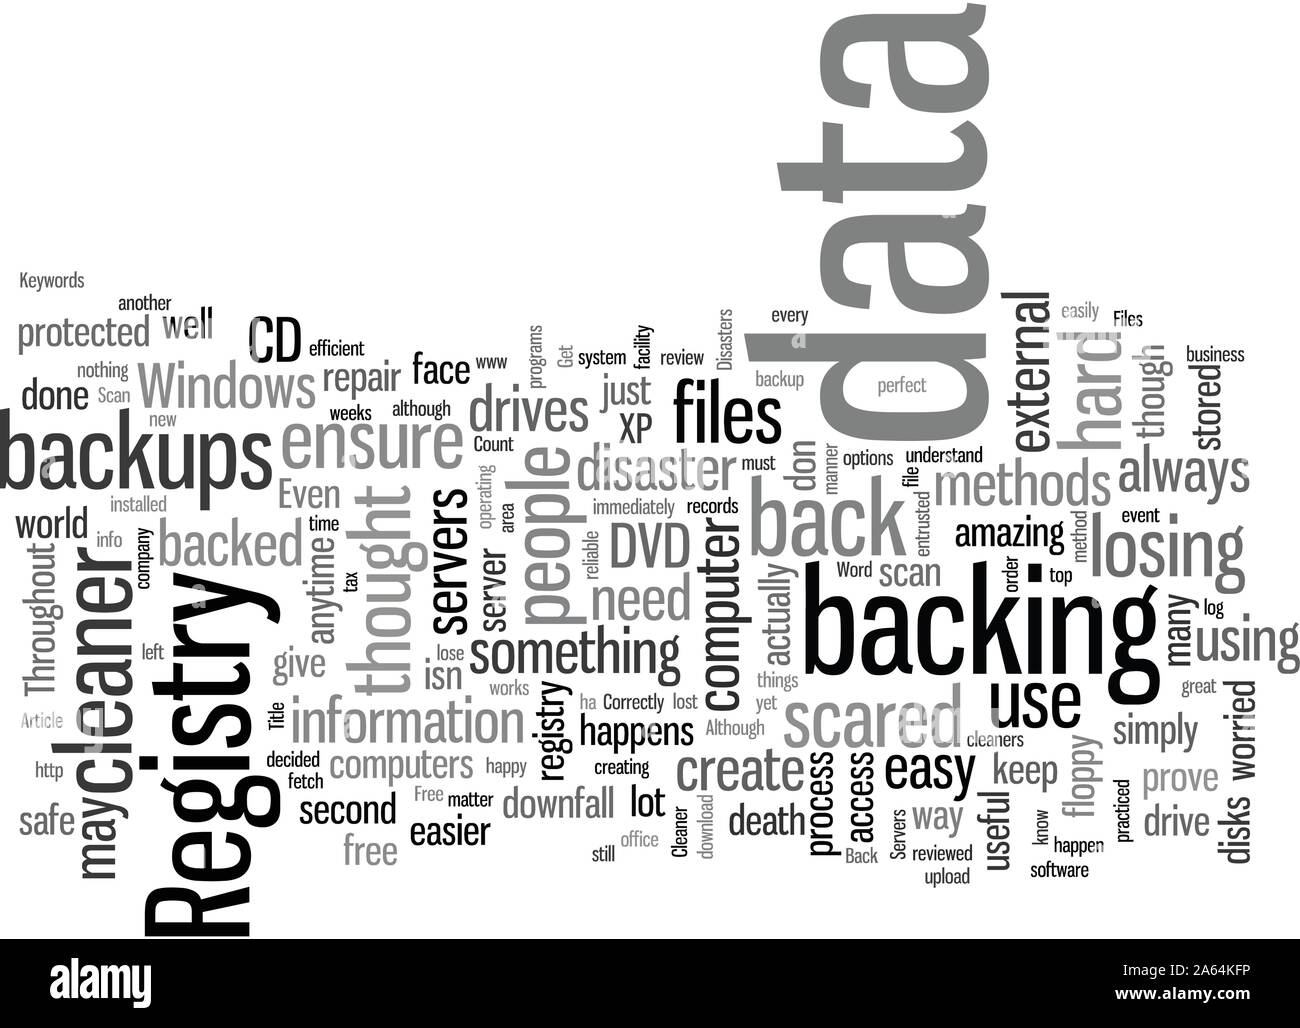 How To Back Up Files Correctly Stock Vector